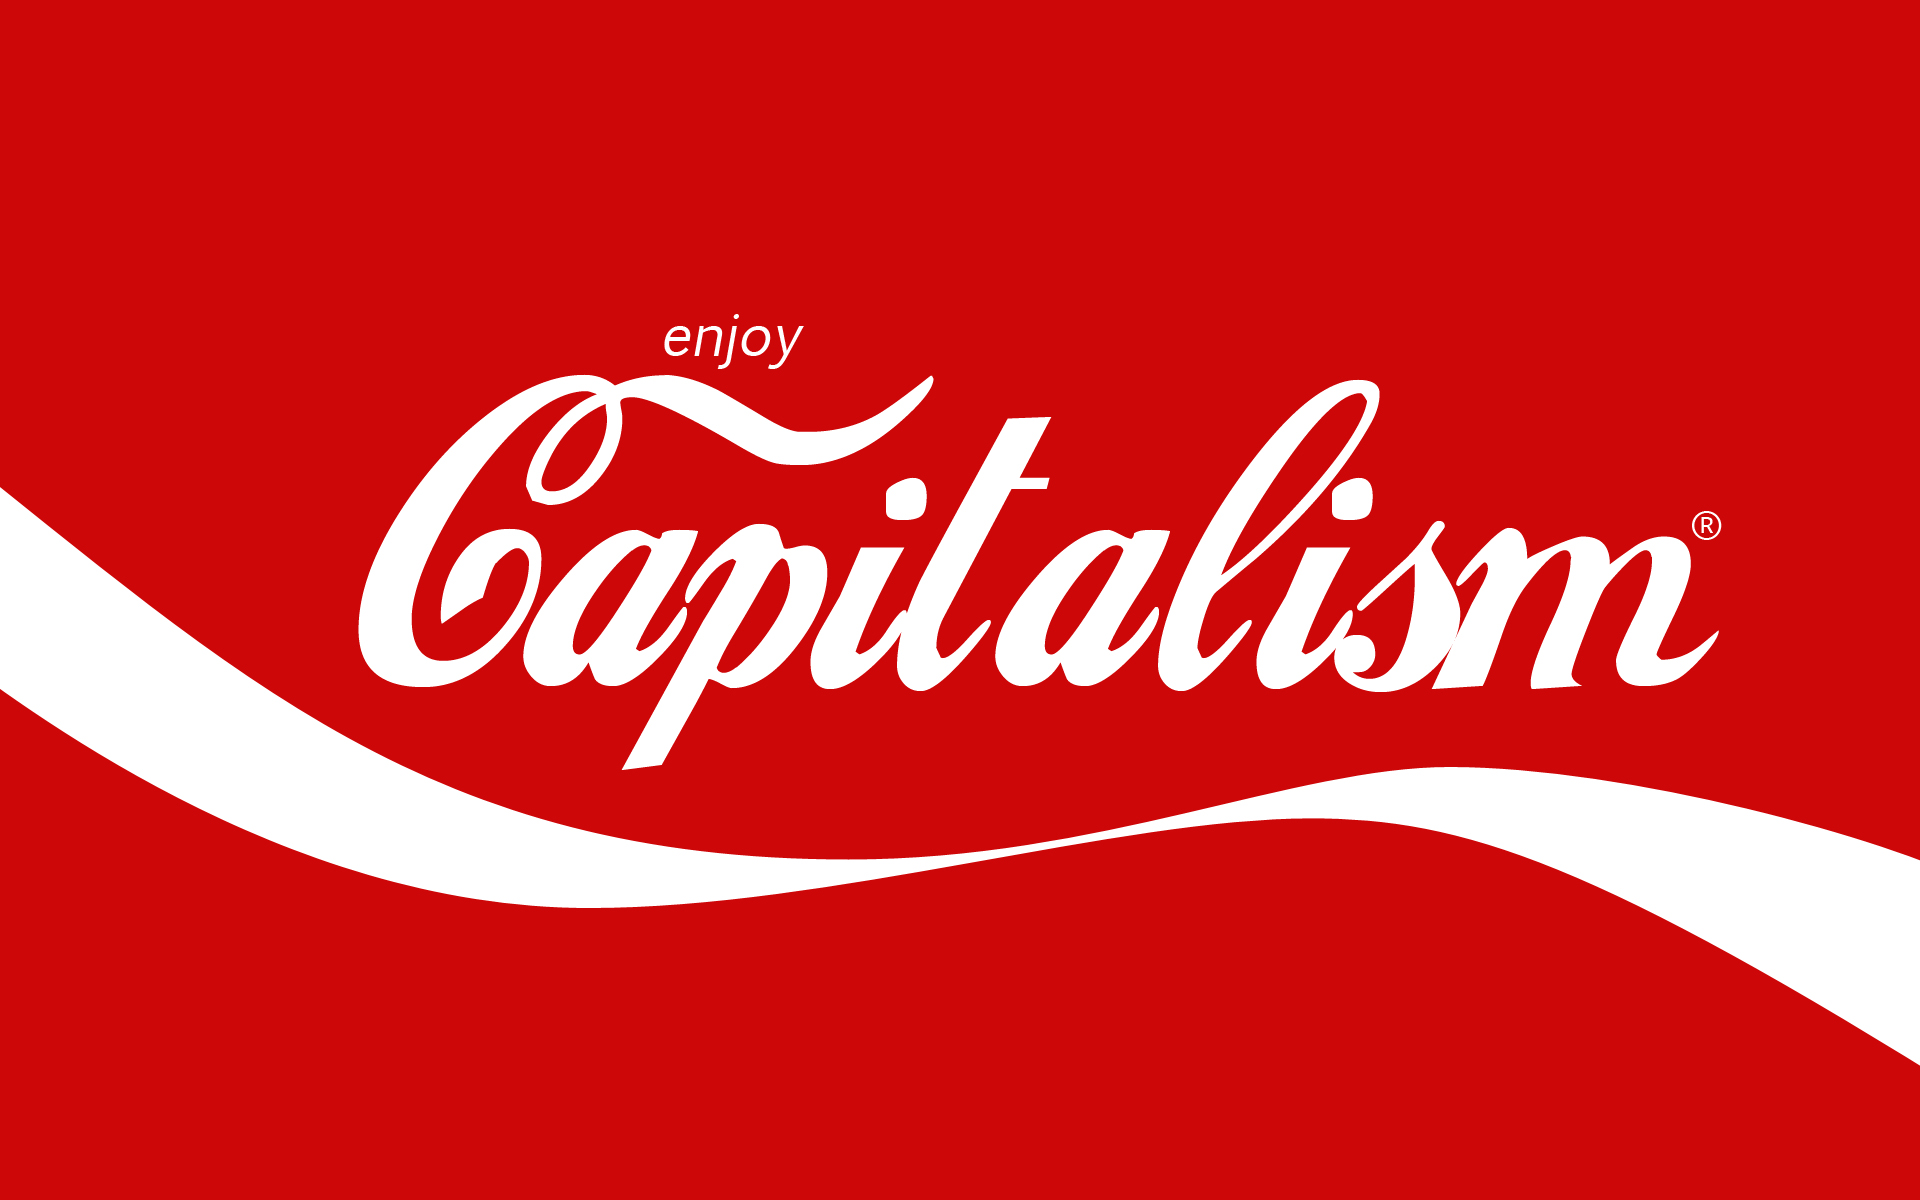 anti capitalist vs pro capitalist Capitalism is an economic theory where production is privately owned and controlled by the laws of supply and demand.